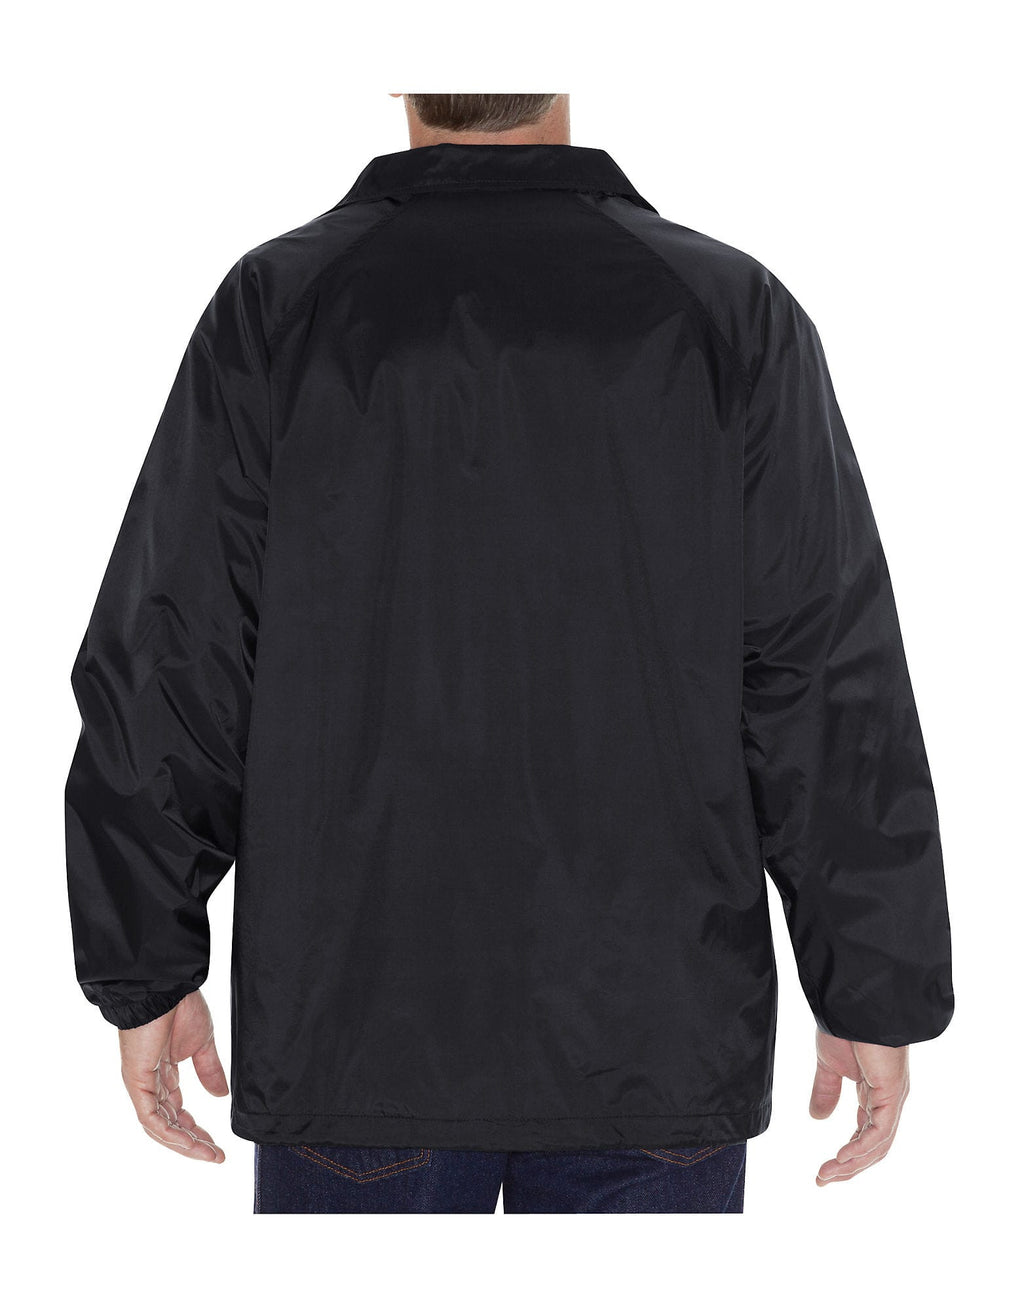 Dickies Nylon Windbreaker Jacket-2